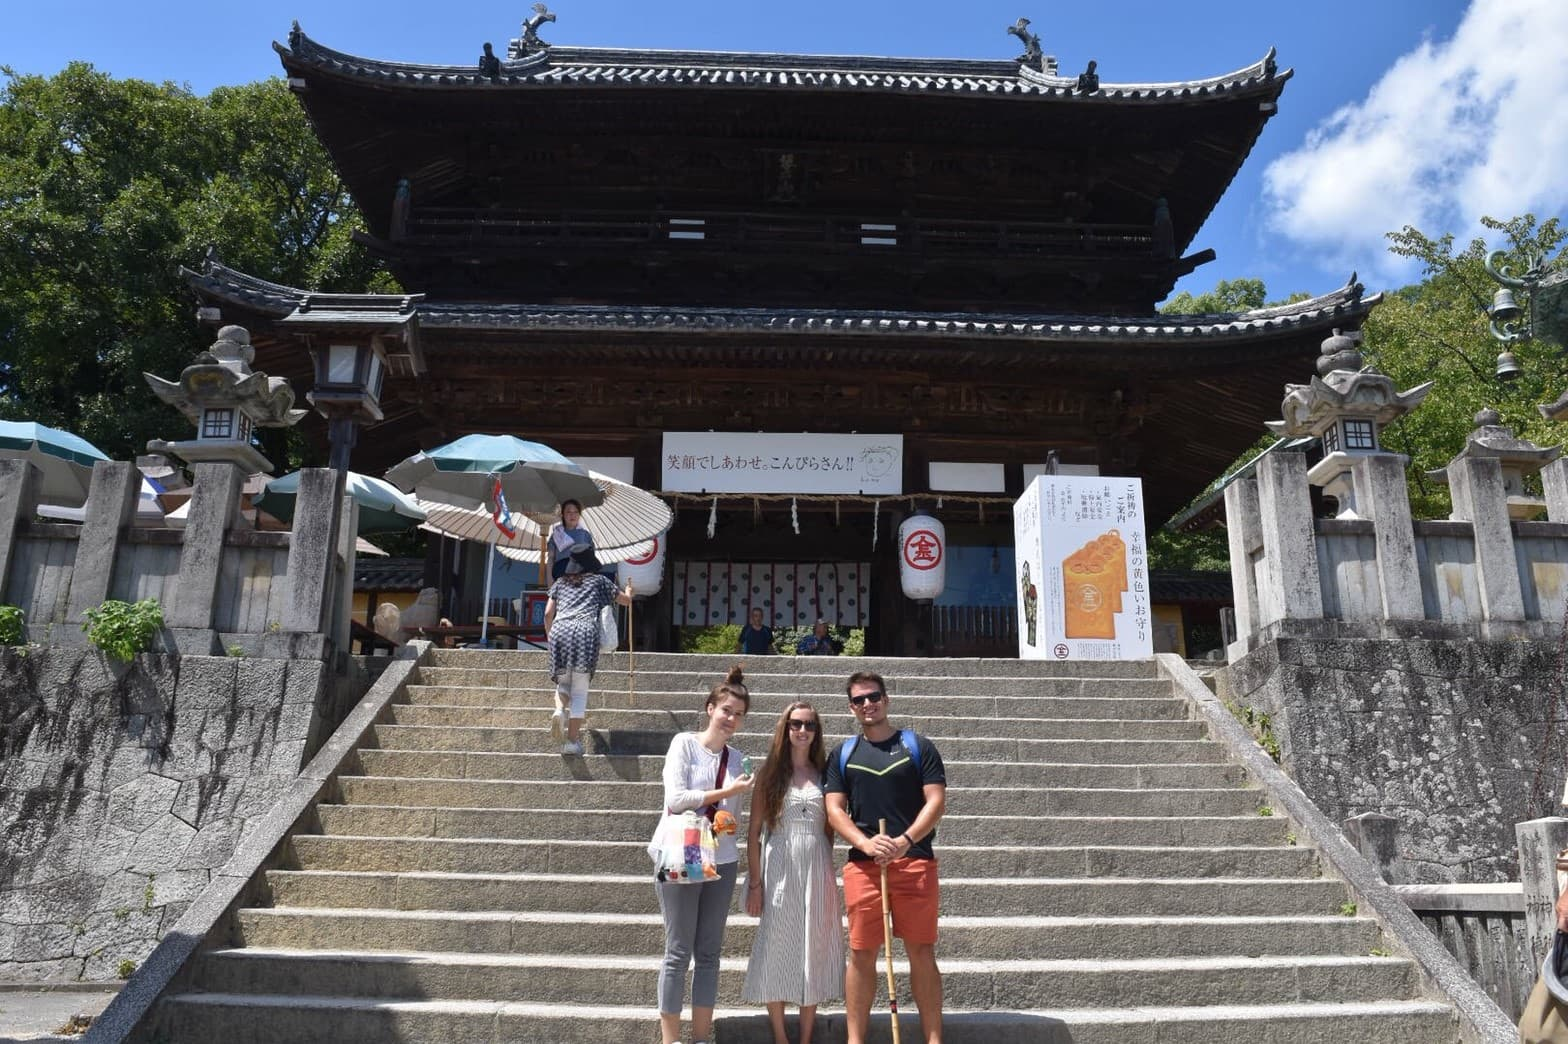 Picture of two men and a woman in front of the Shrine